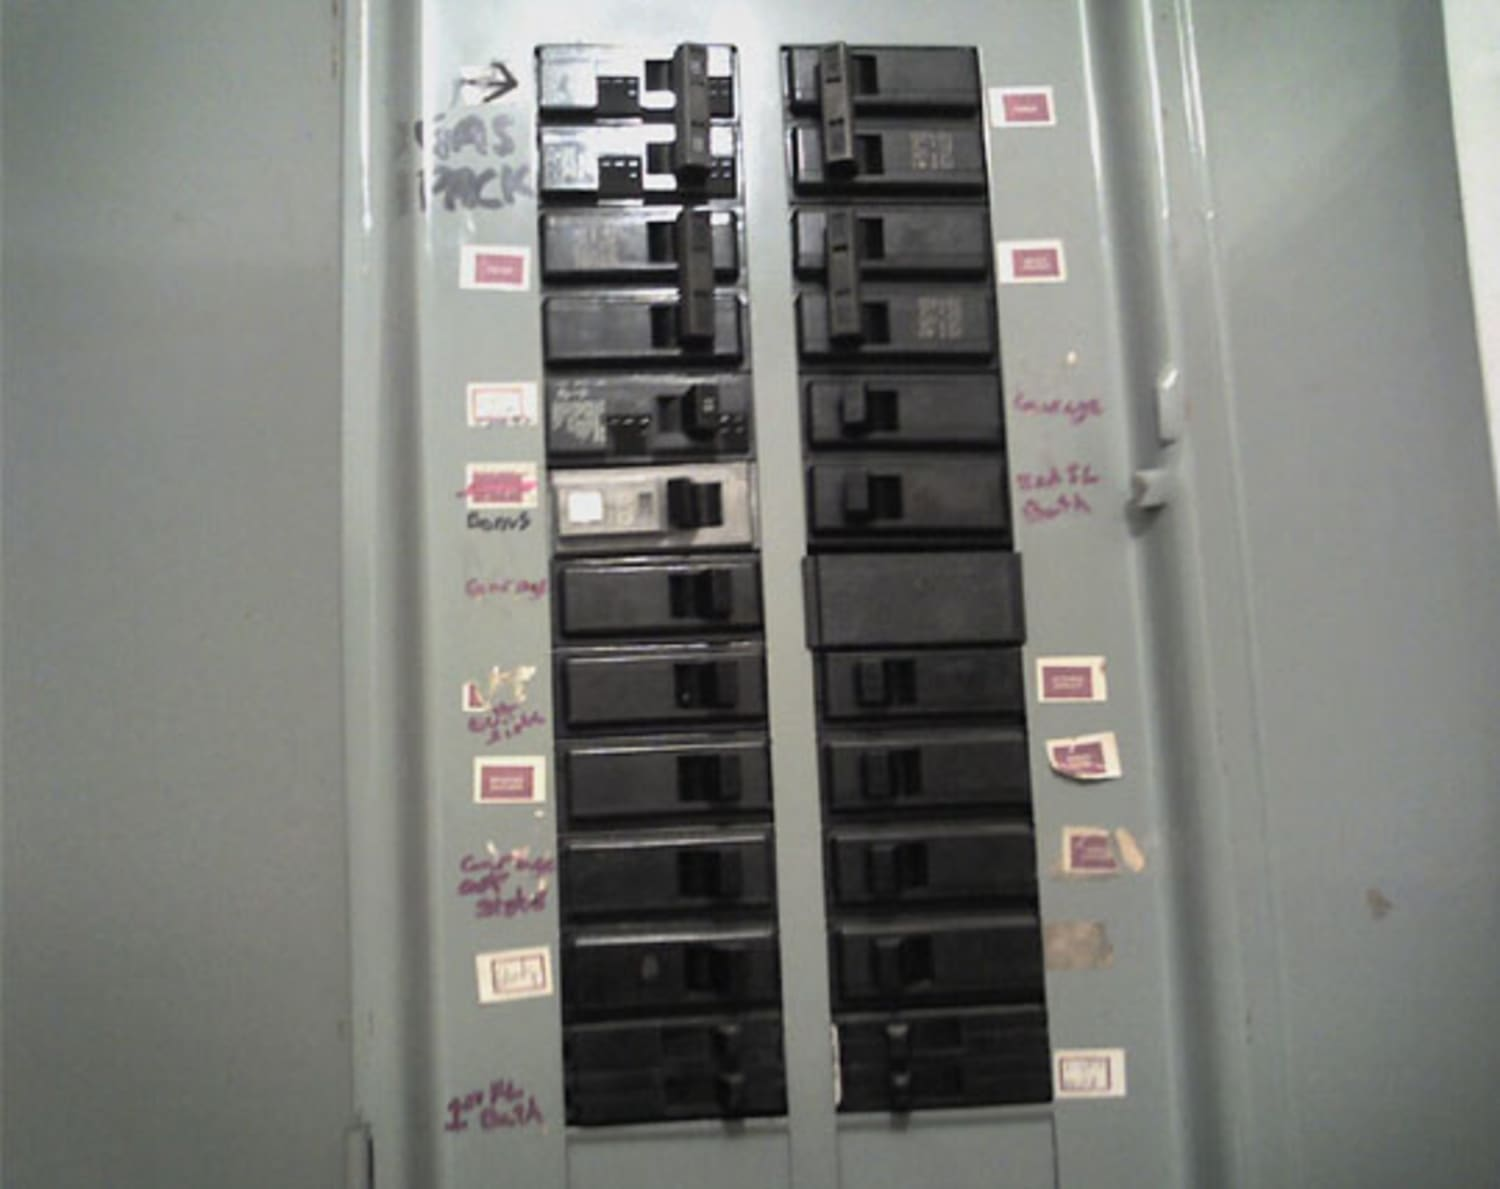 No Fuse Box In Apartment on apartment carpet, apartment roof, apartment battery box, apartment front door, apartment meter box, apartment panel box, apartment cable box,